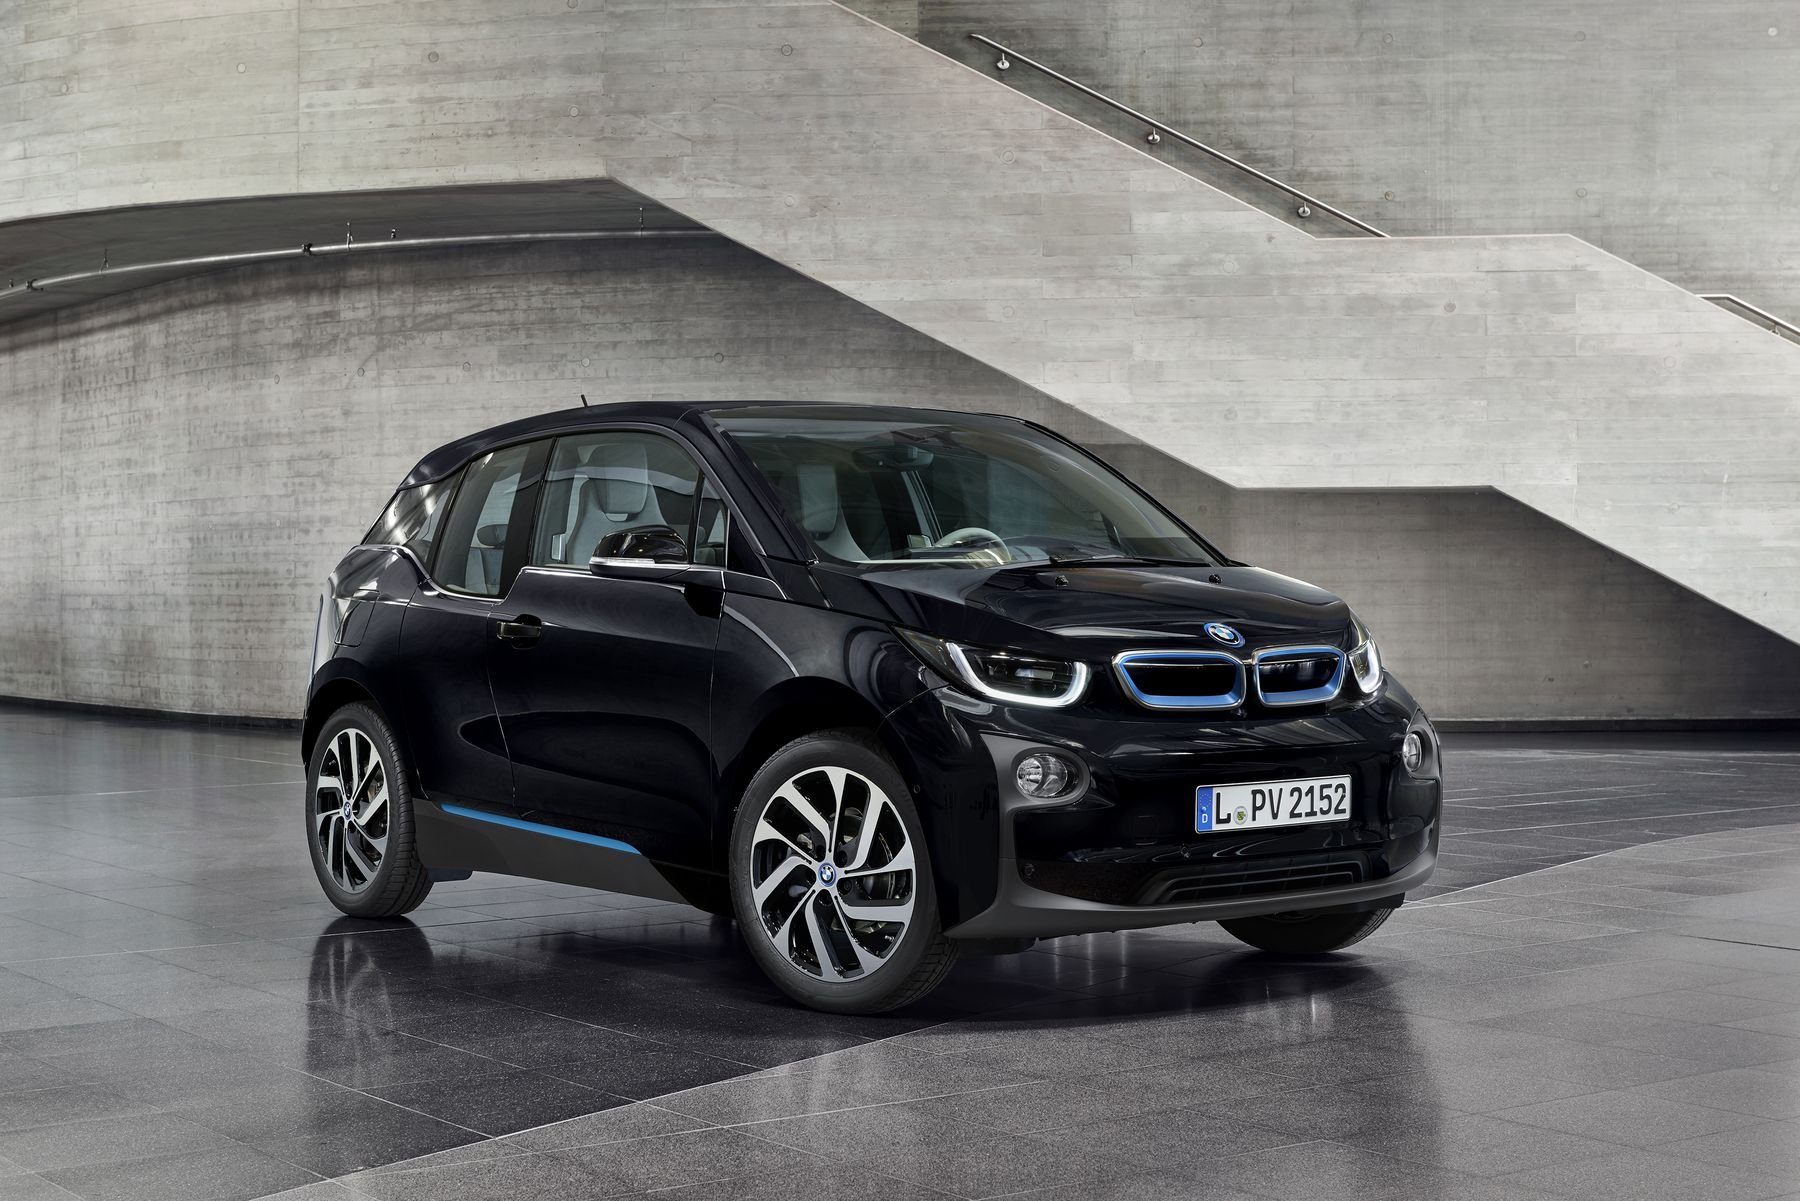 2017 bmw i3 new color fluid black my electric car forums. Black Bedroom Furniture Sets. Home Design Ideas